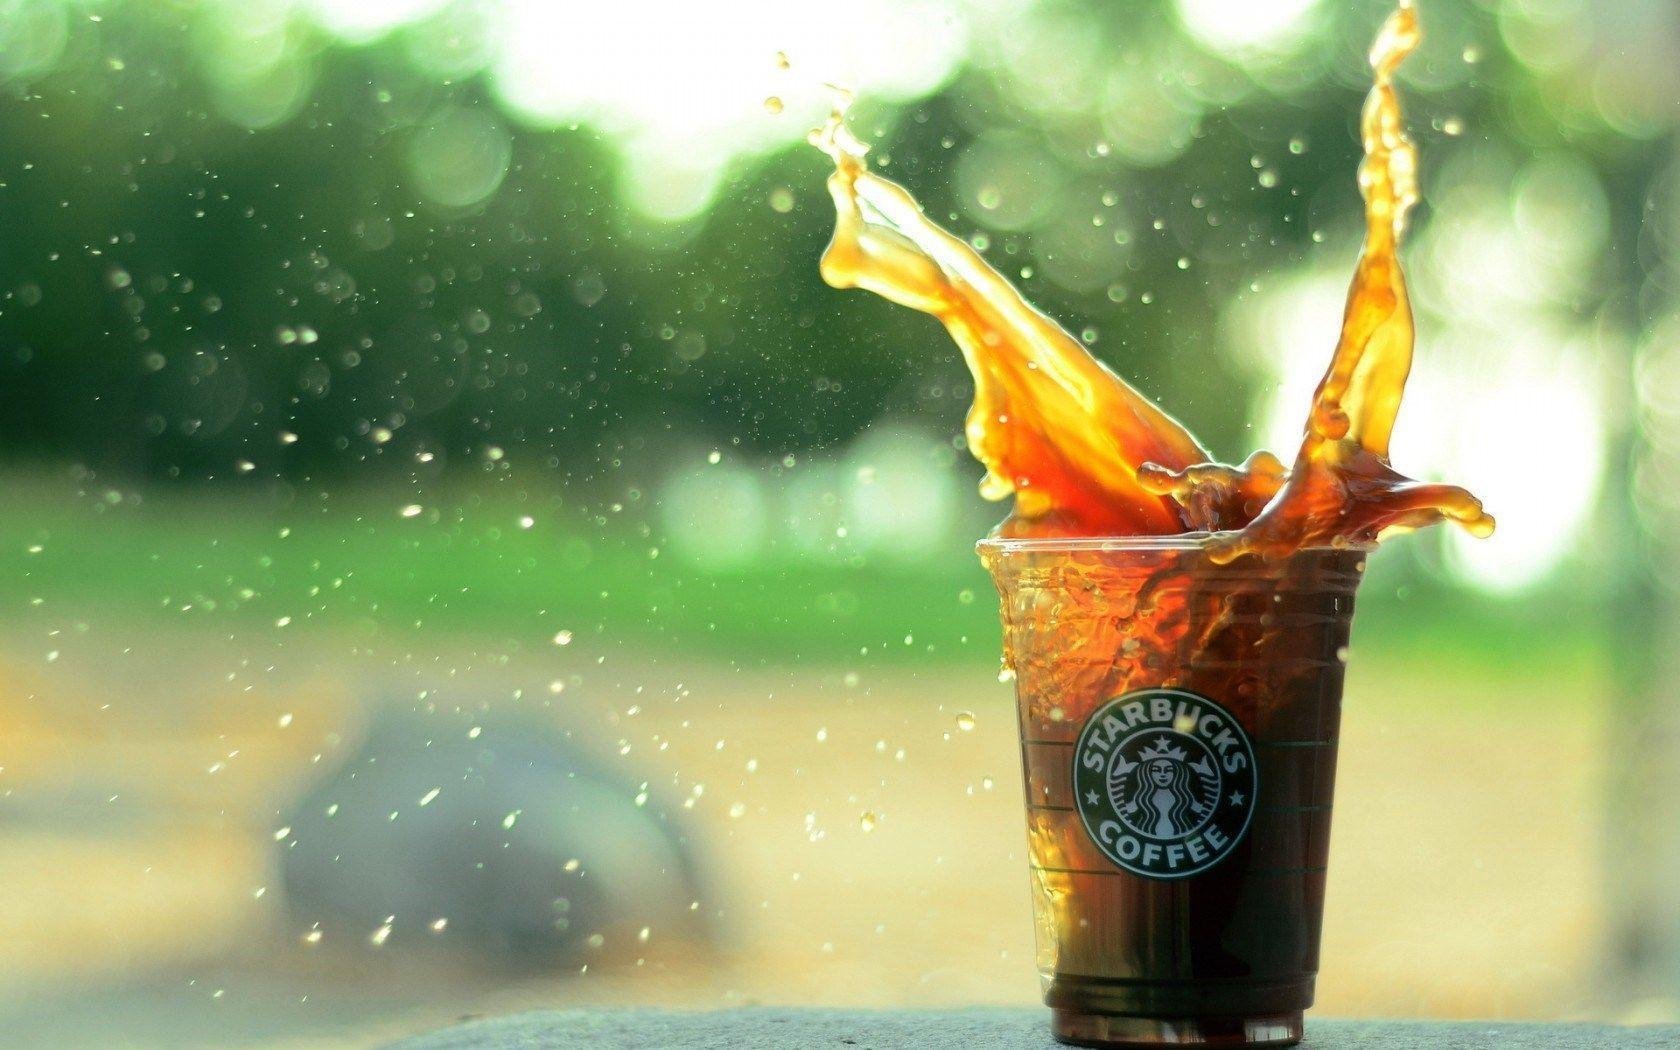 Starbucks Coffee Splash Spray Hd Wallpaper | Wallpaper List